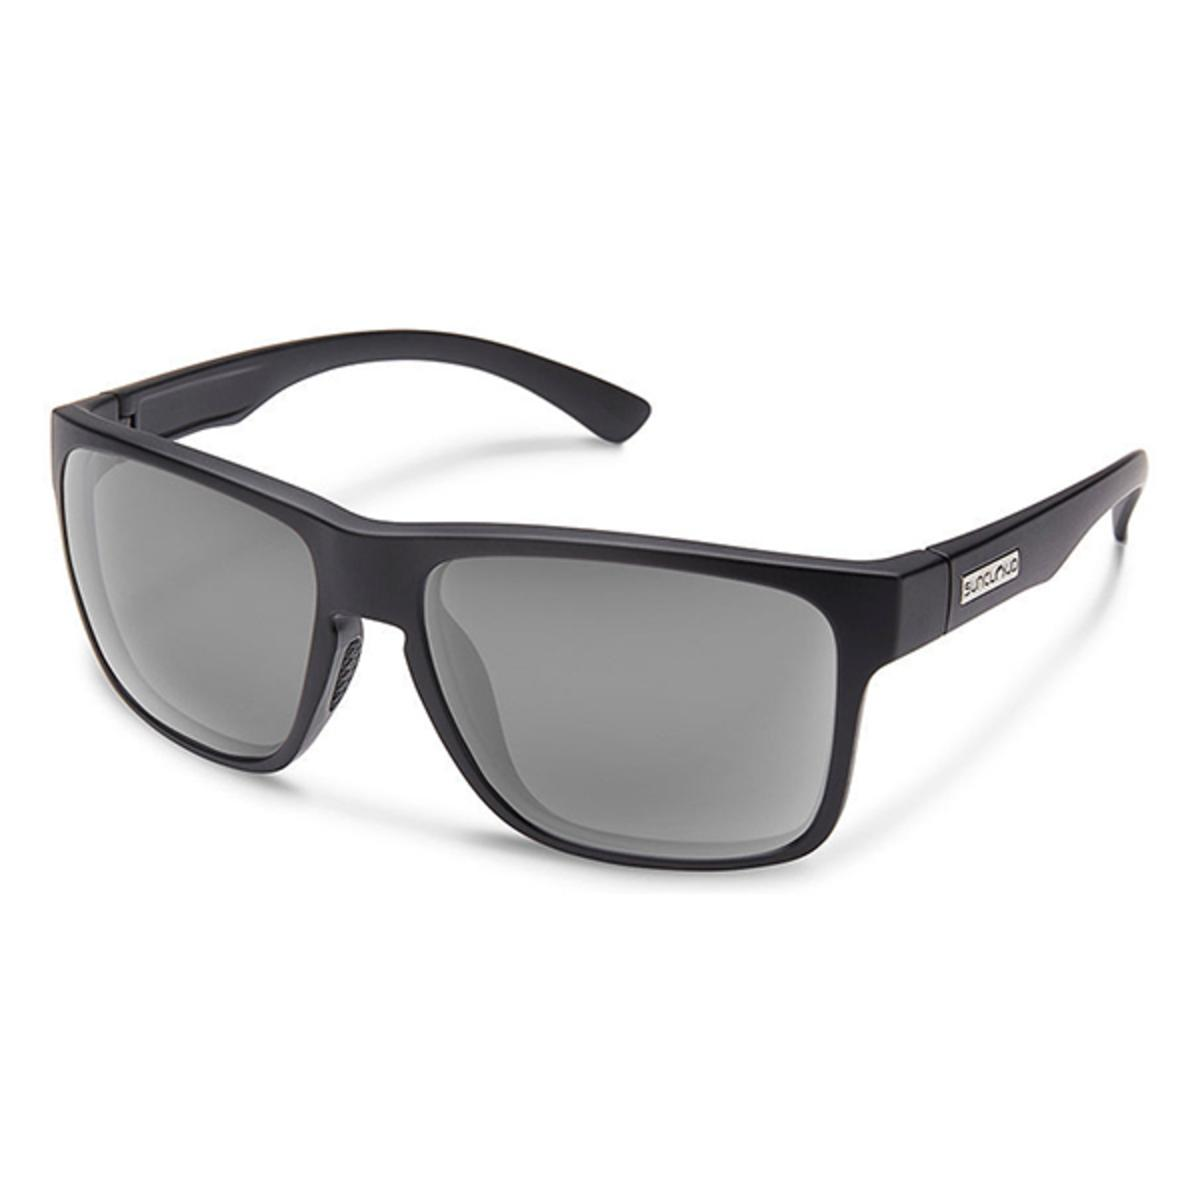 31cffc1511f Suncloud Injection Rambler Matte Black Polarized Gray Sunglasses - The  Warming Store